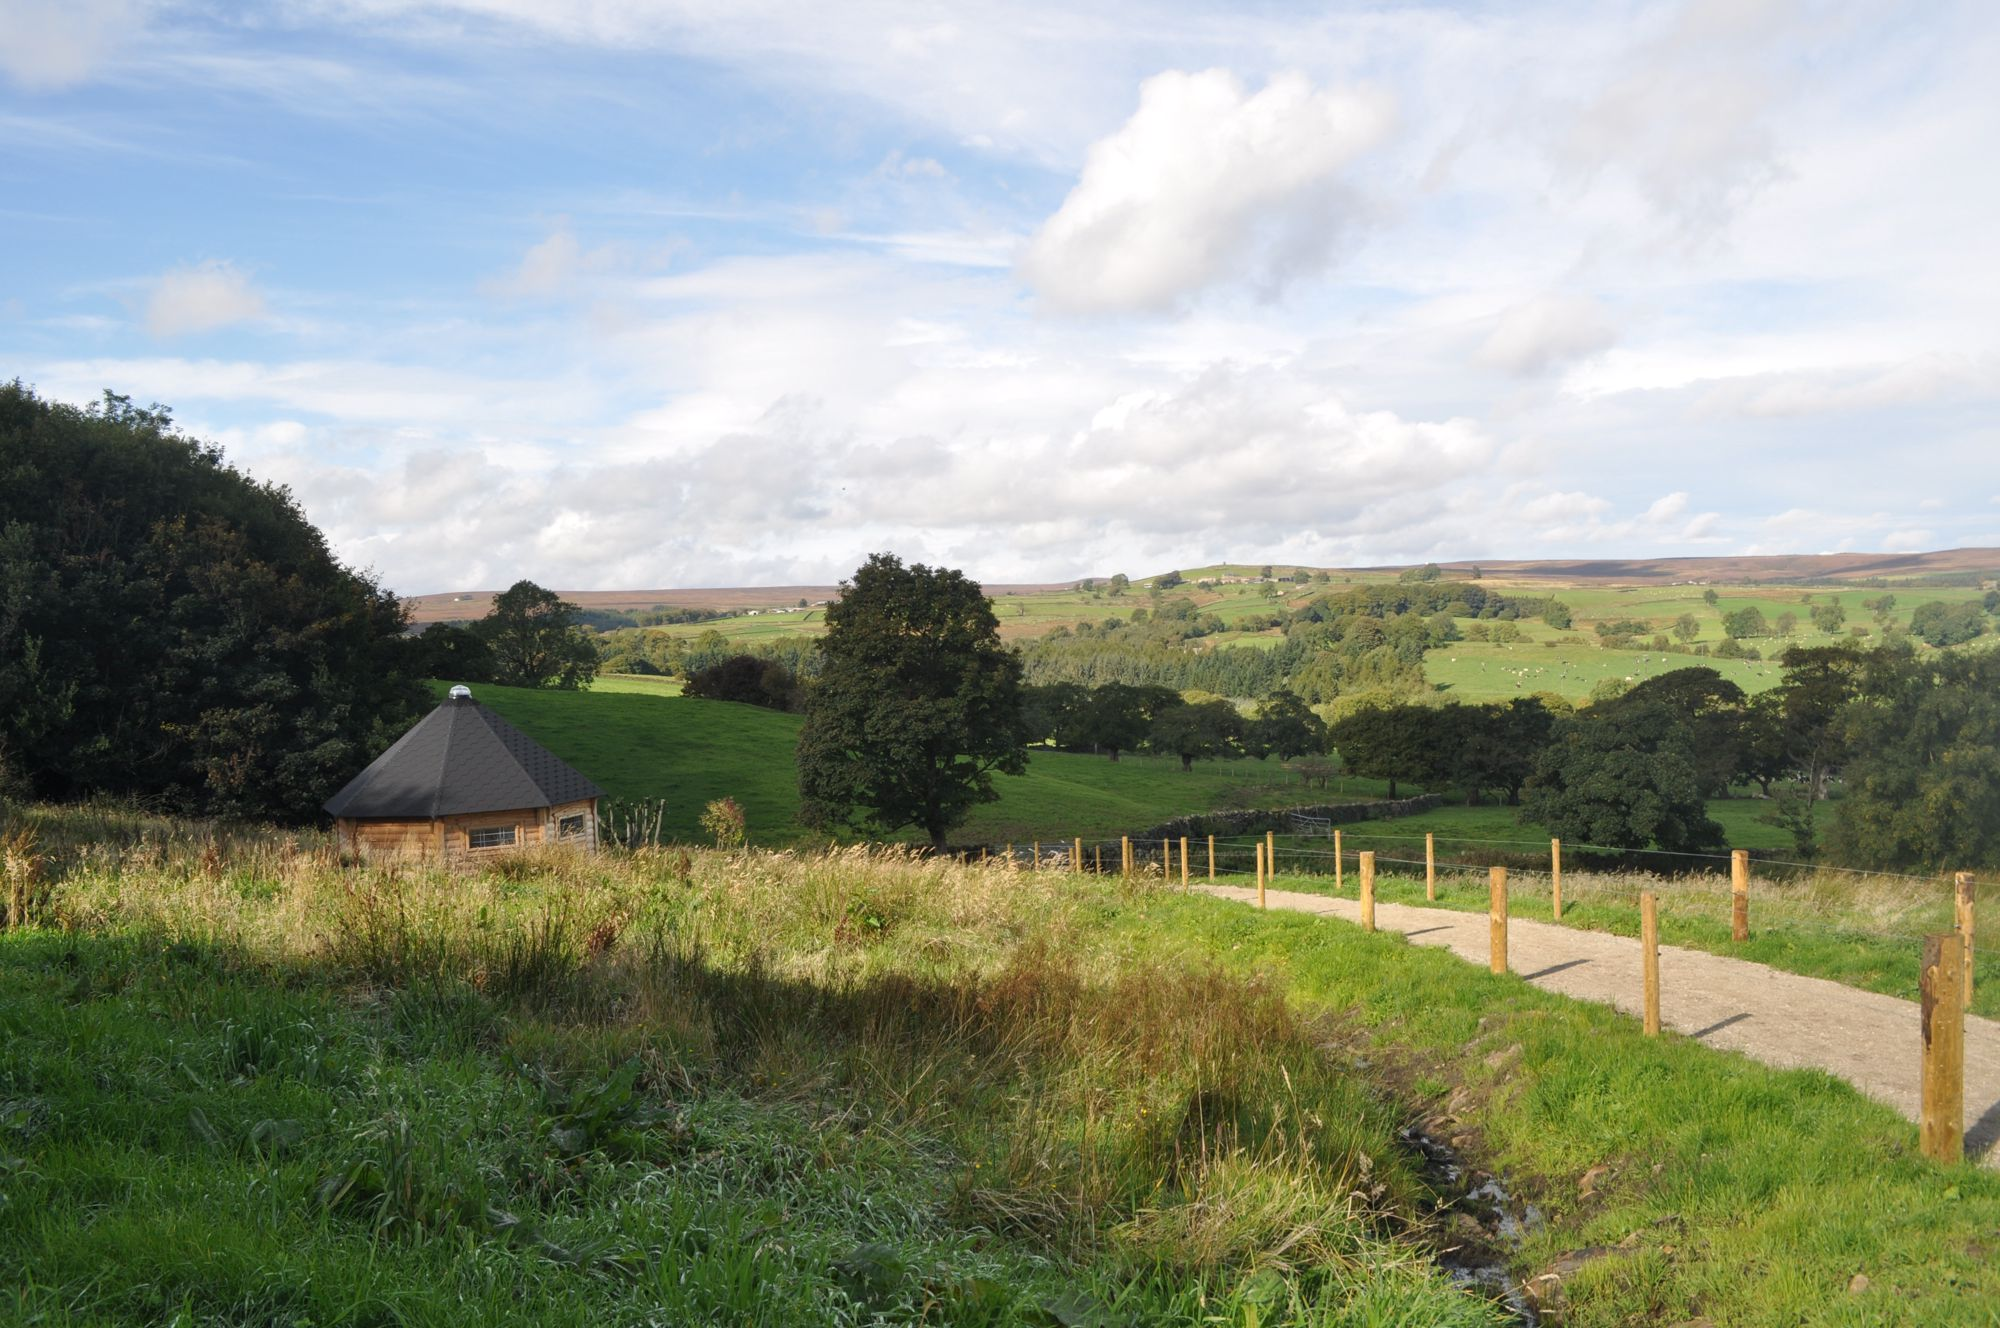 Campsites in the Yorkshire Dales – Top campsites in the Yorkshire Dales National Park – Cool Camping